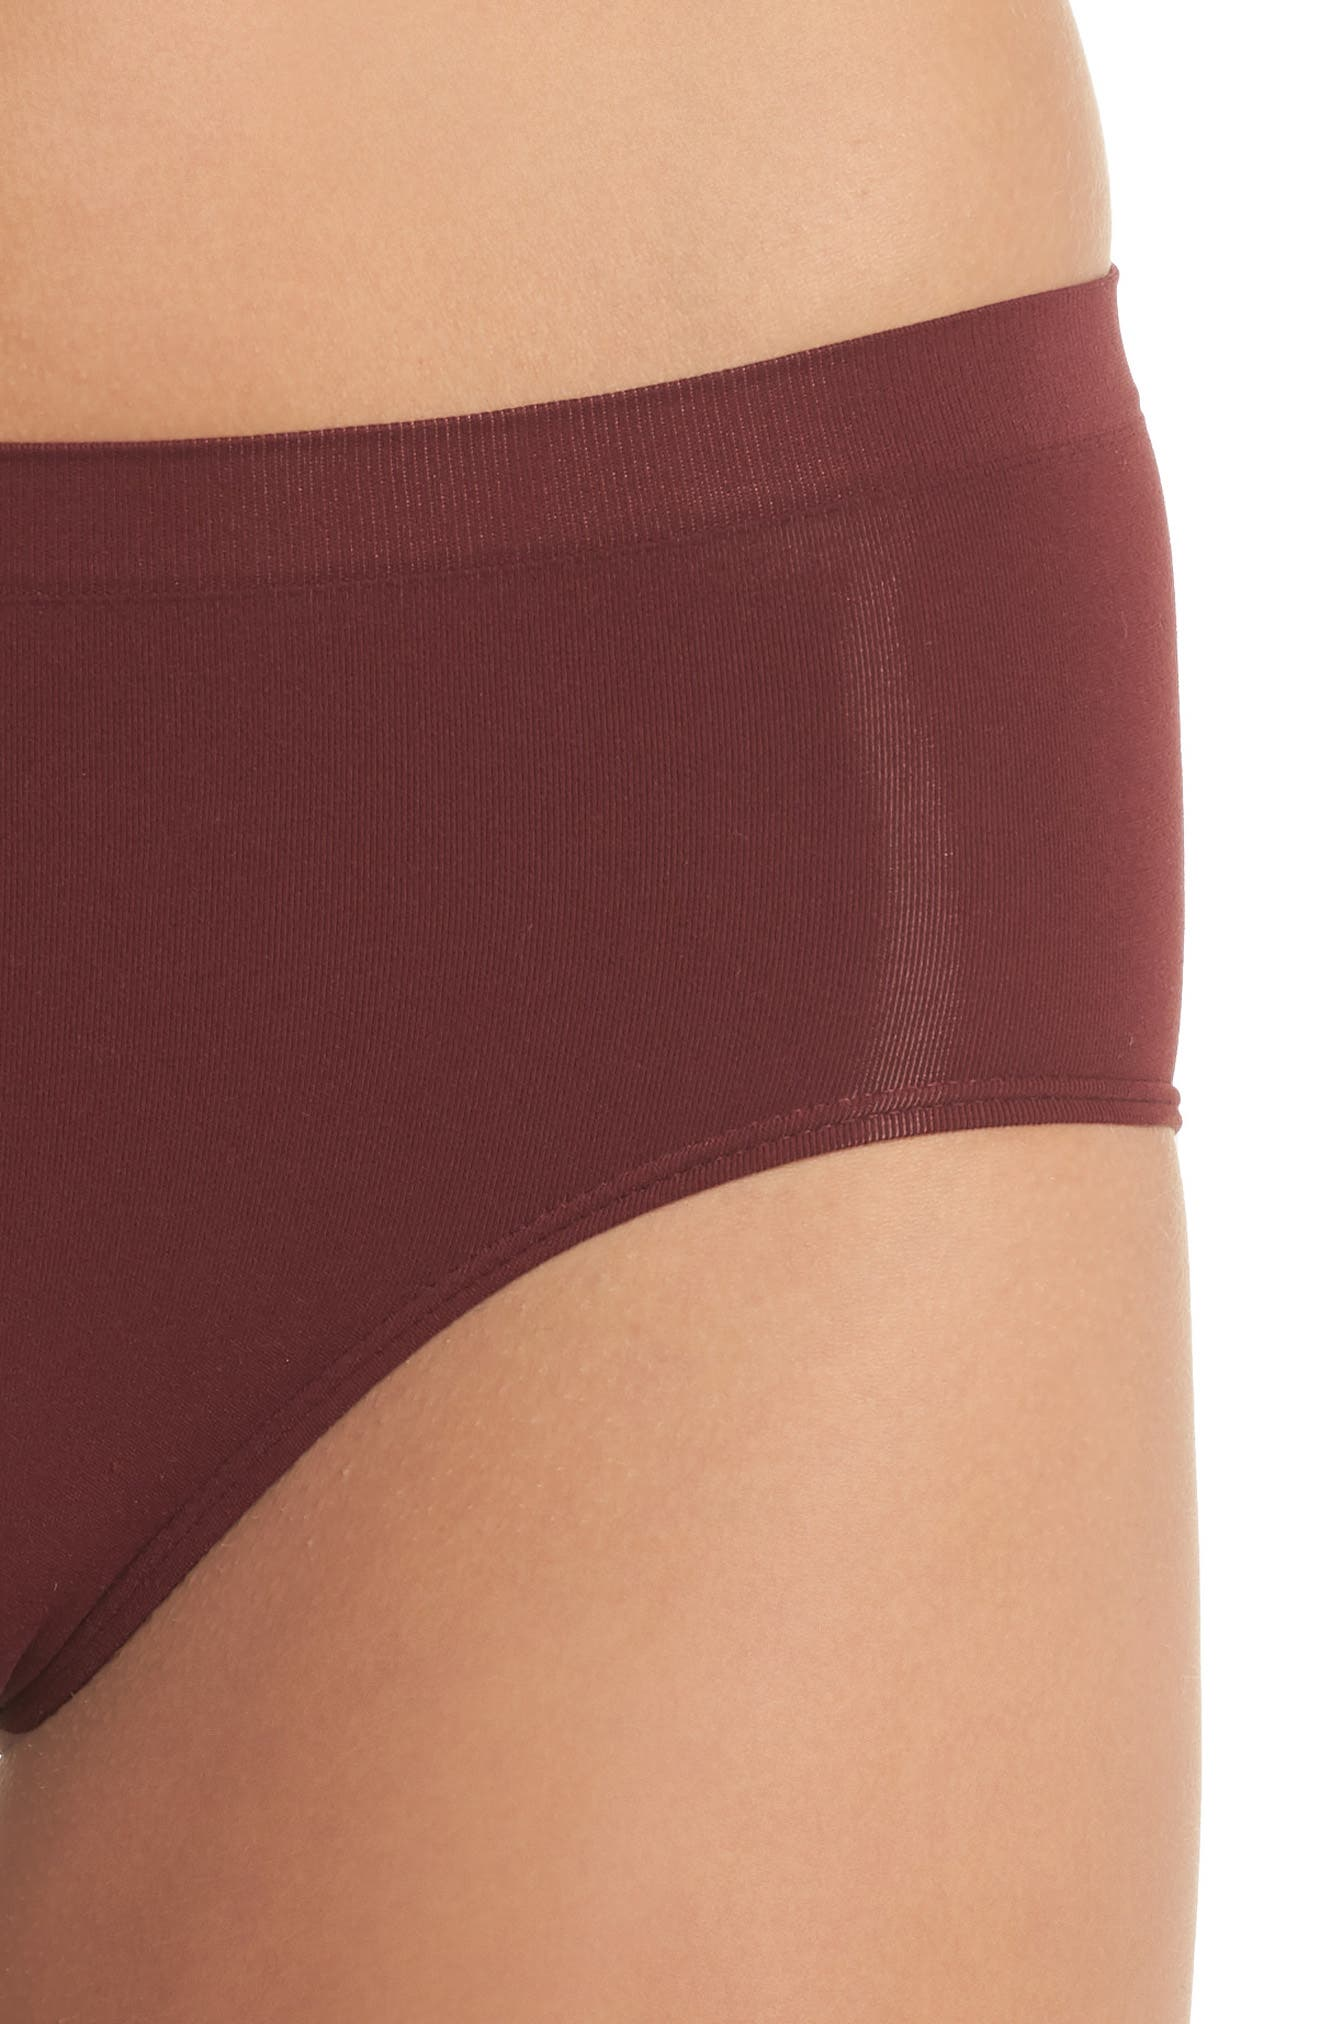 Seamless Hipster Briefs,                             Alternate thumbnail 5, color,                             Red Tannin